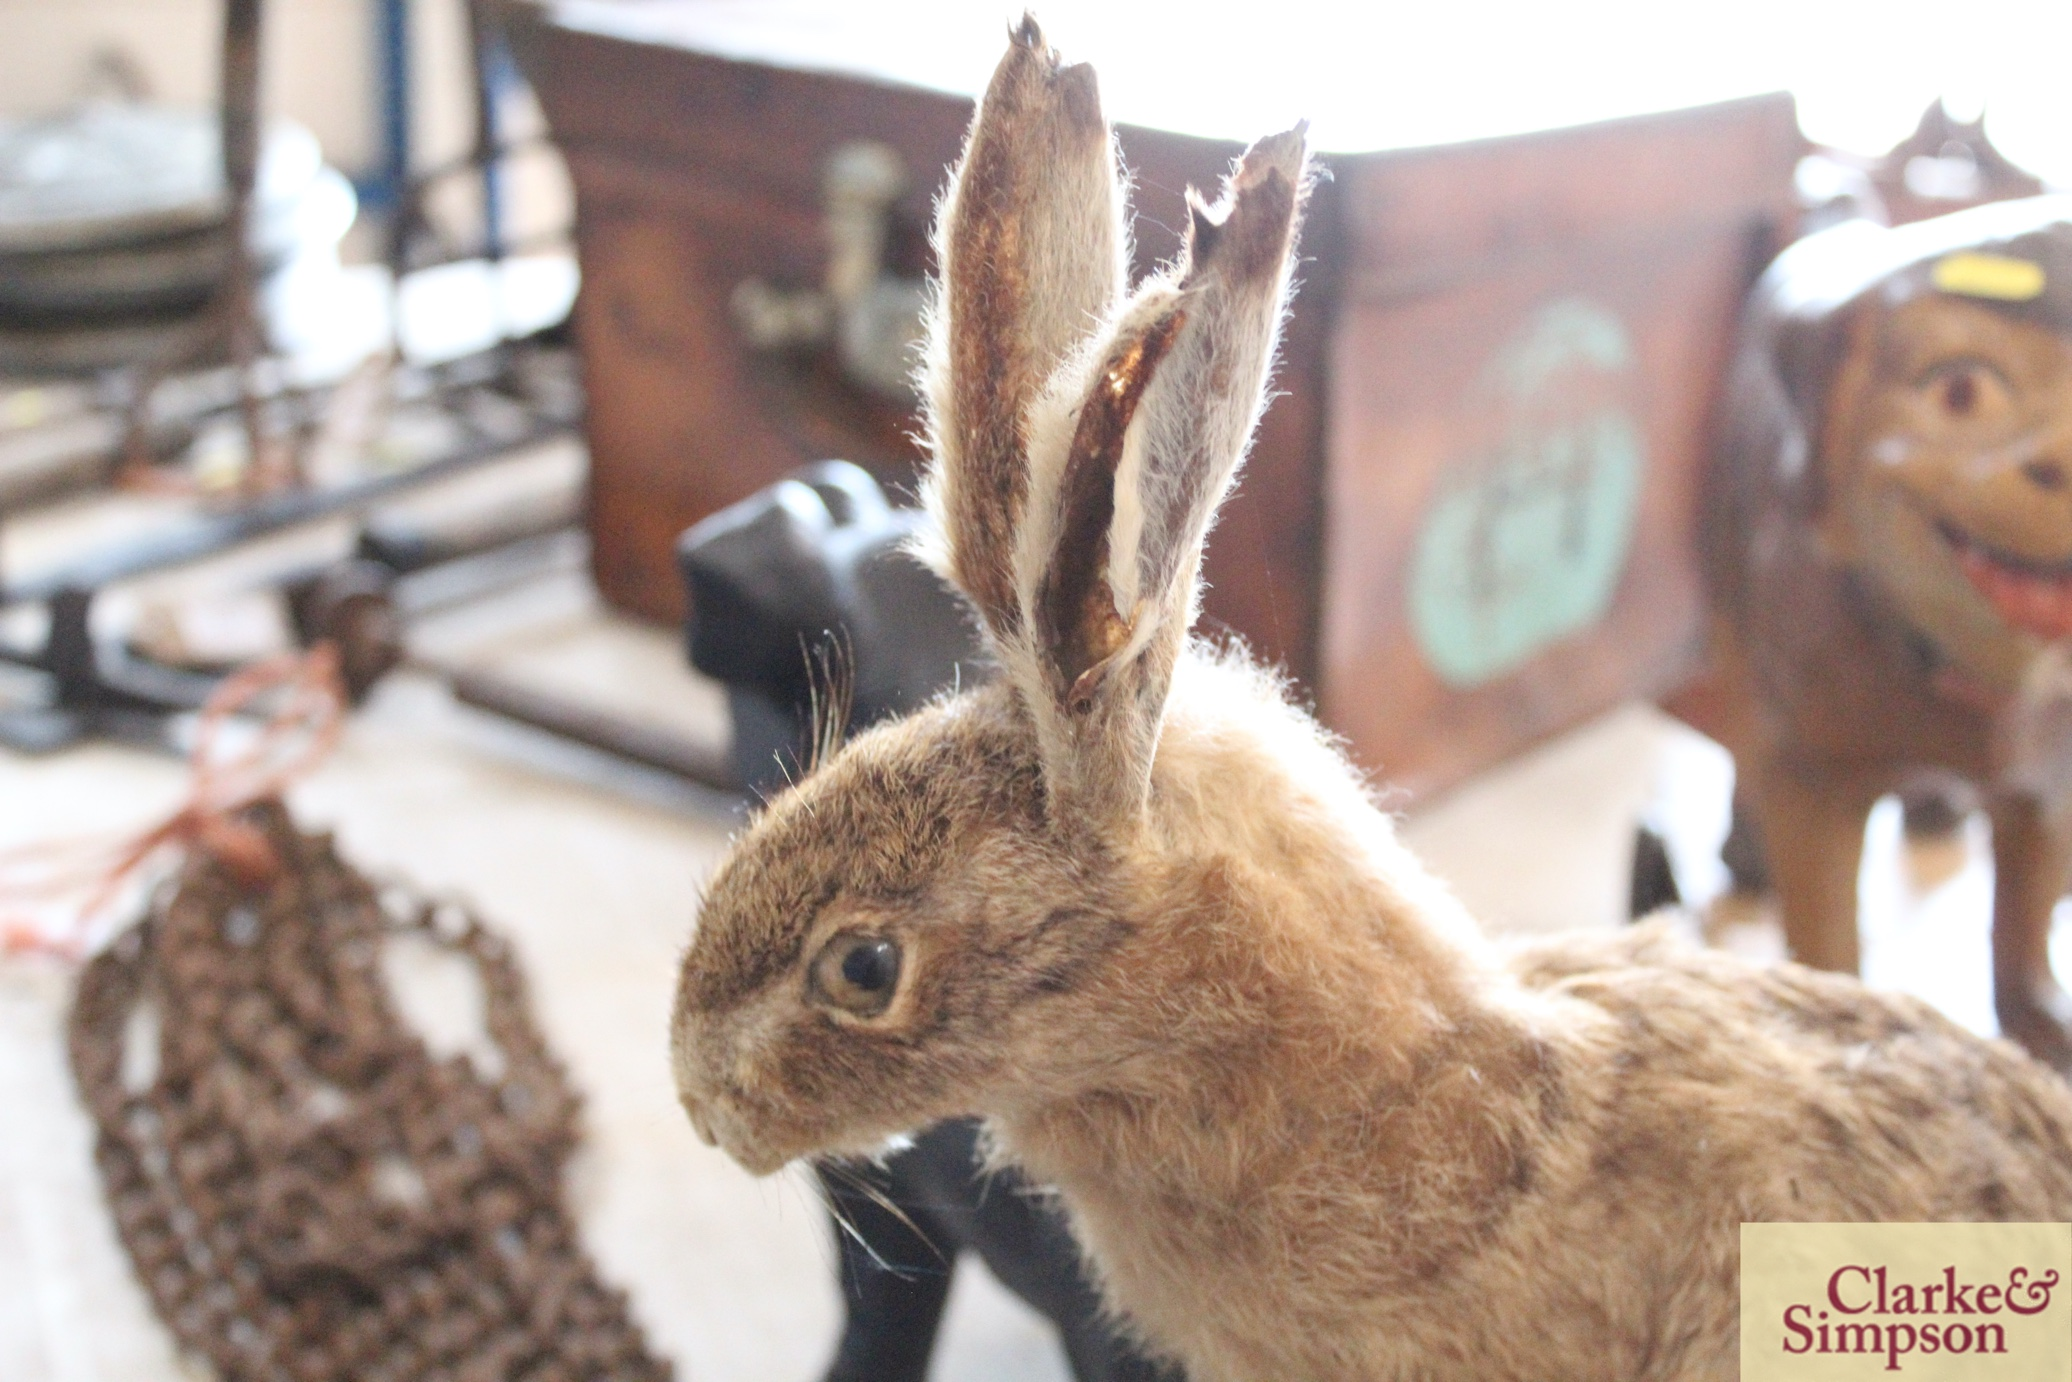 A taxidermy hare on a log - Image 3 of 8